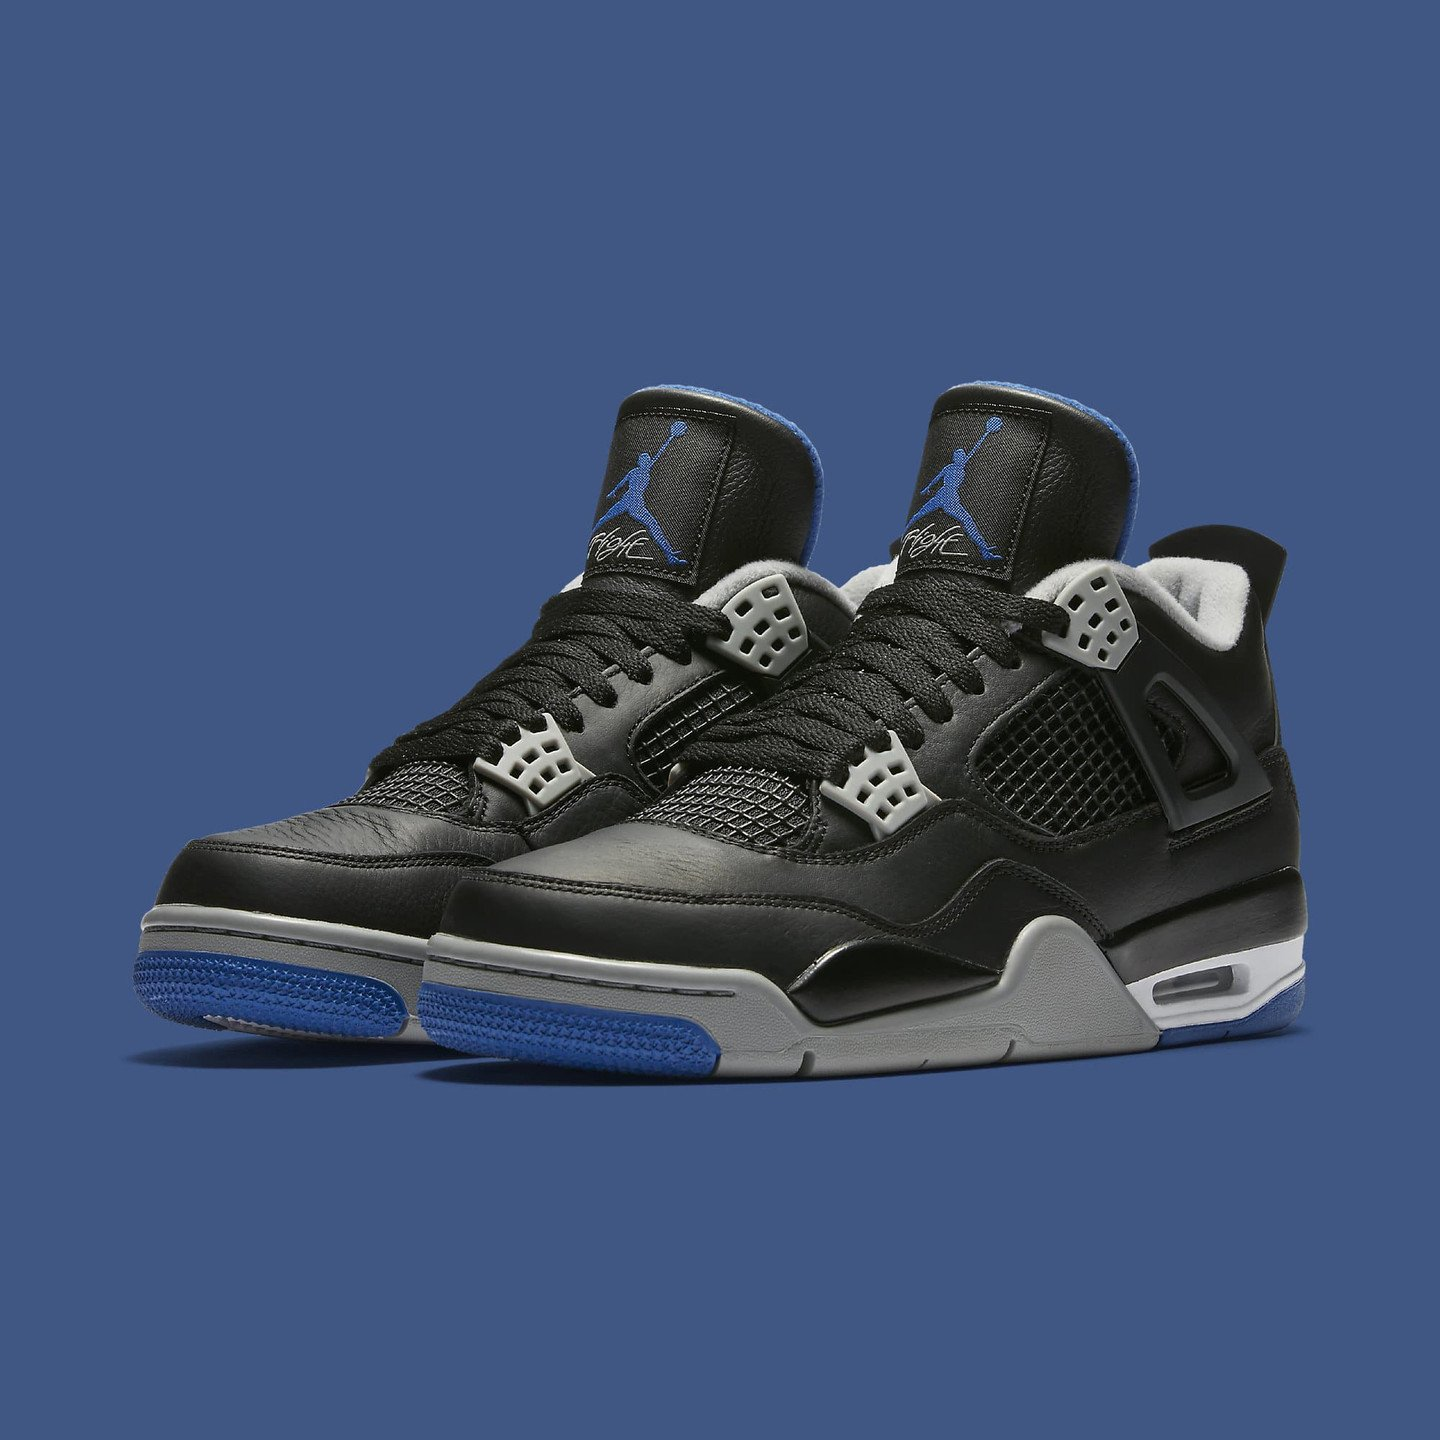 Jordan Air Jordan 4 Retro GS Black / Game Royal / Matte Silver  408452-006